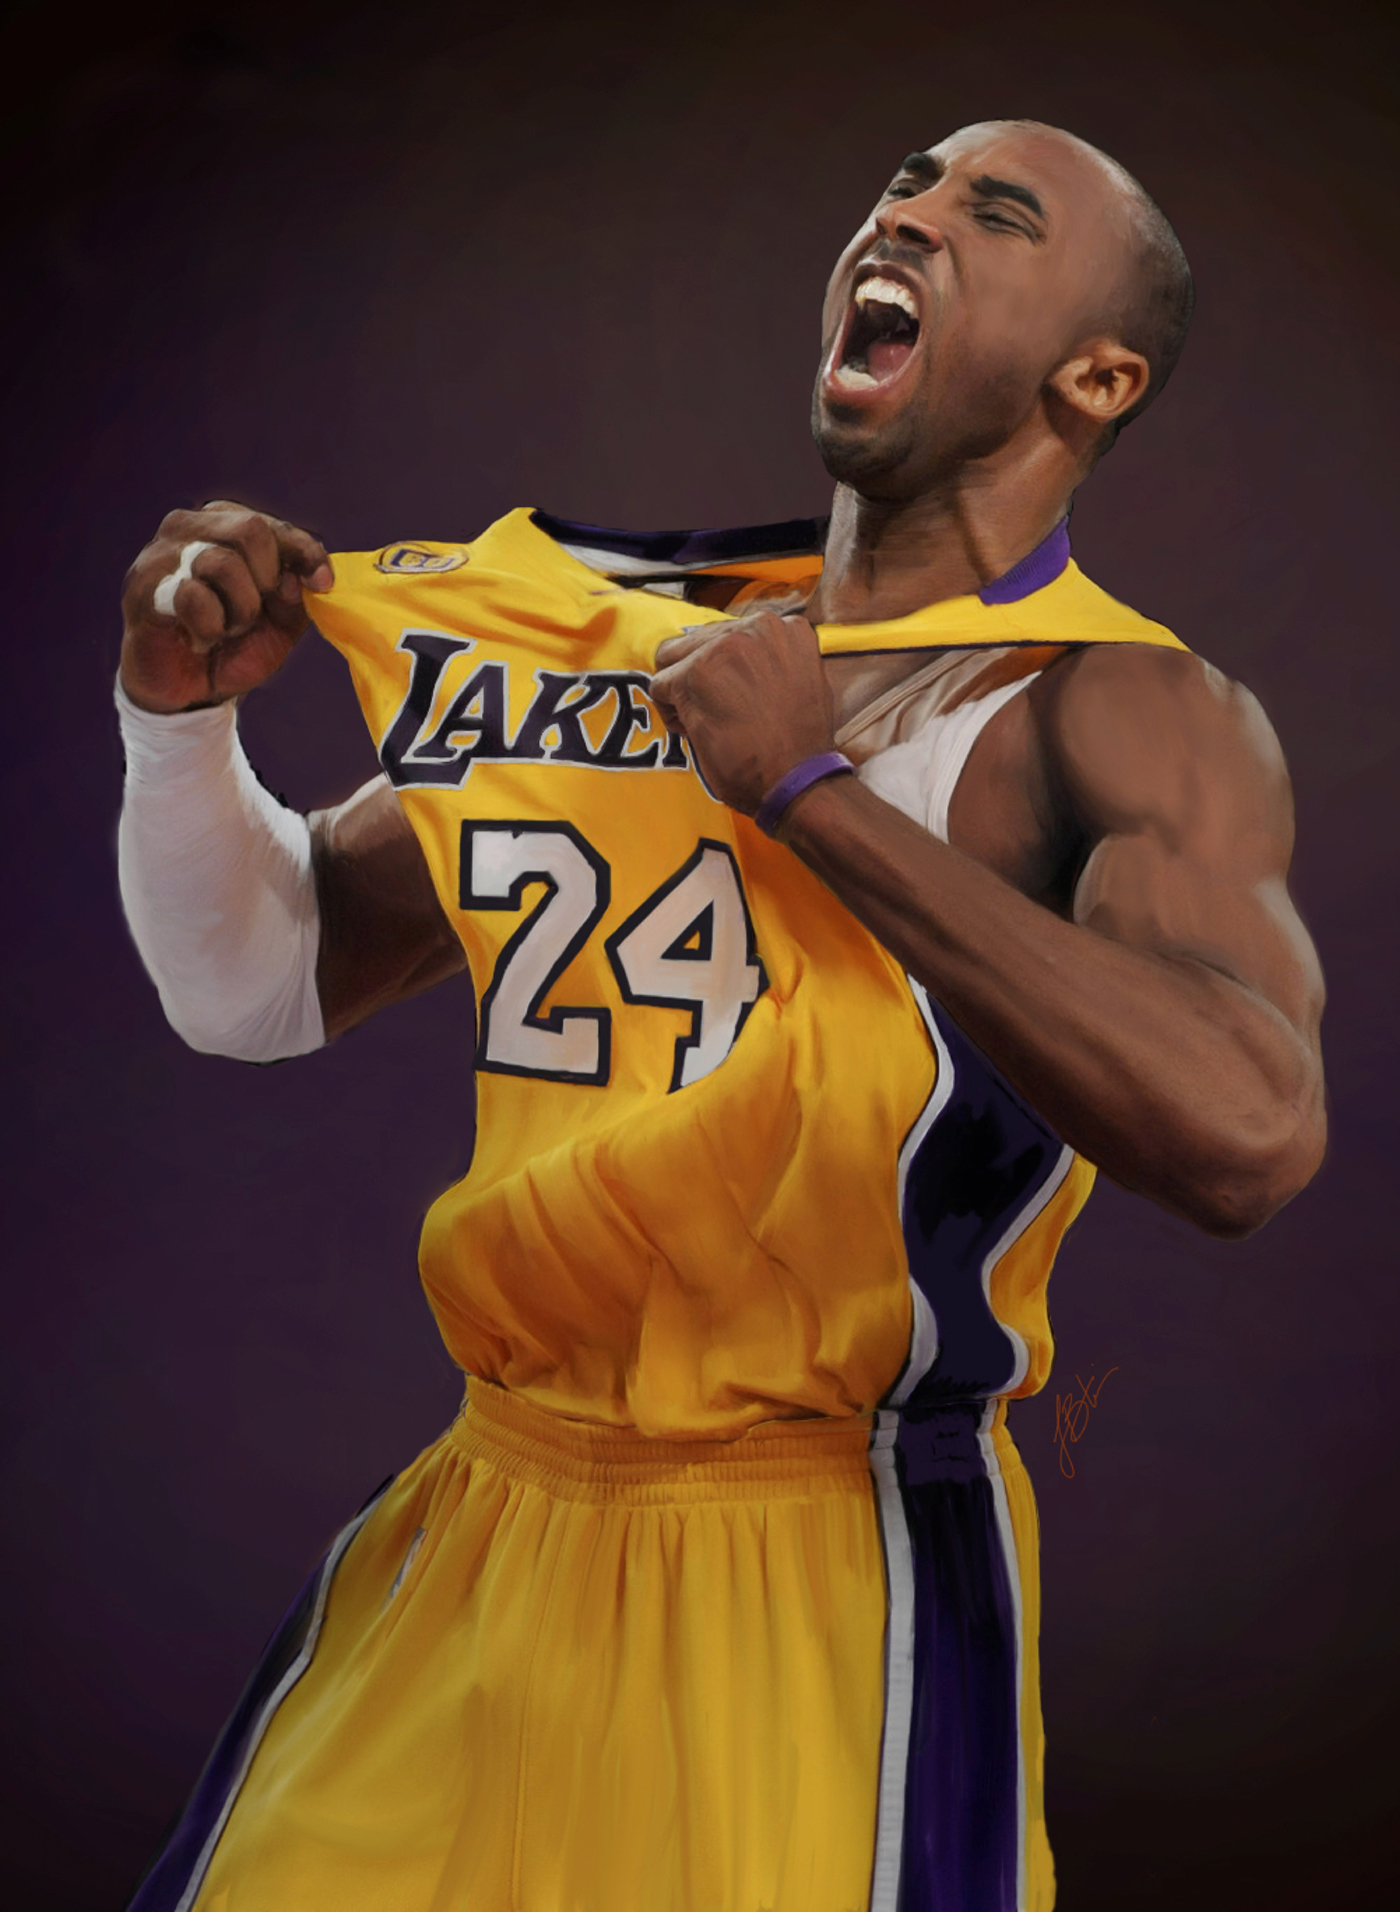 kobe bryant digital painting behance